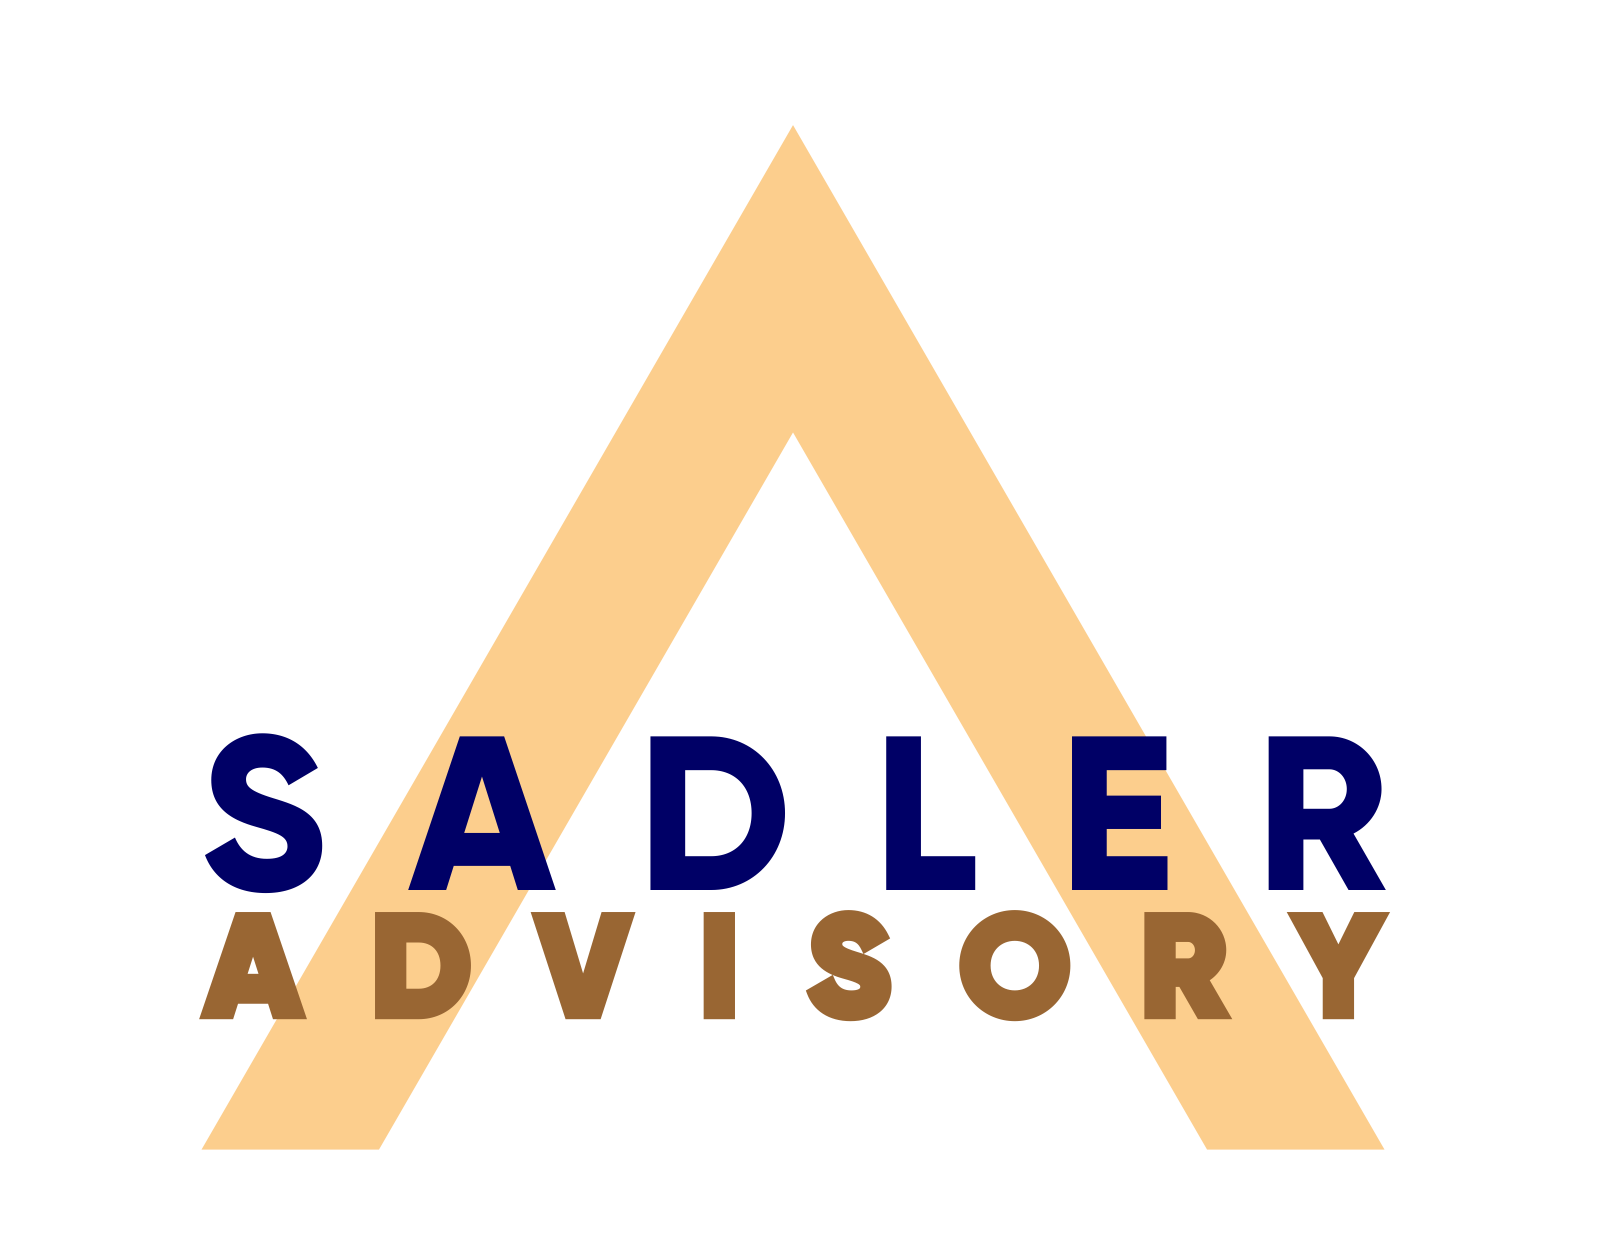 Sadler Advisory